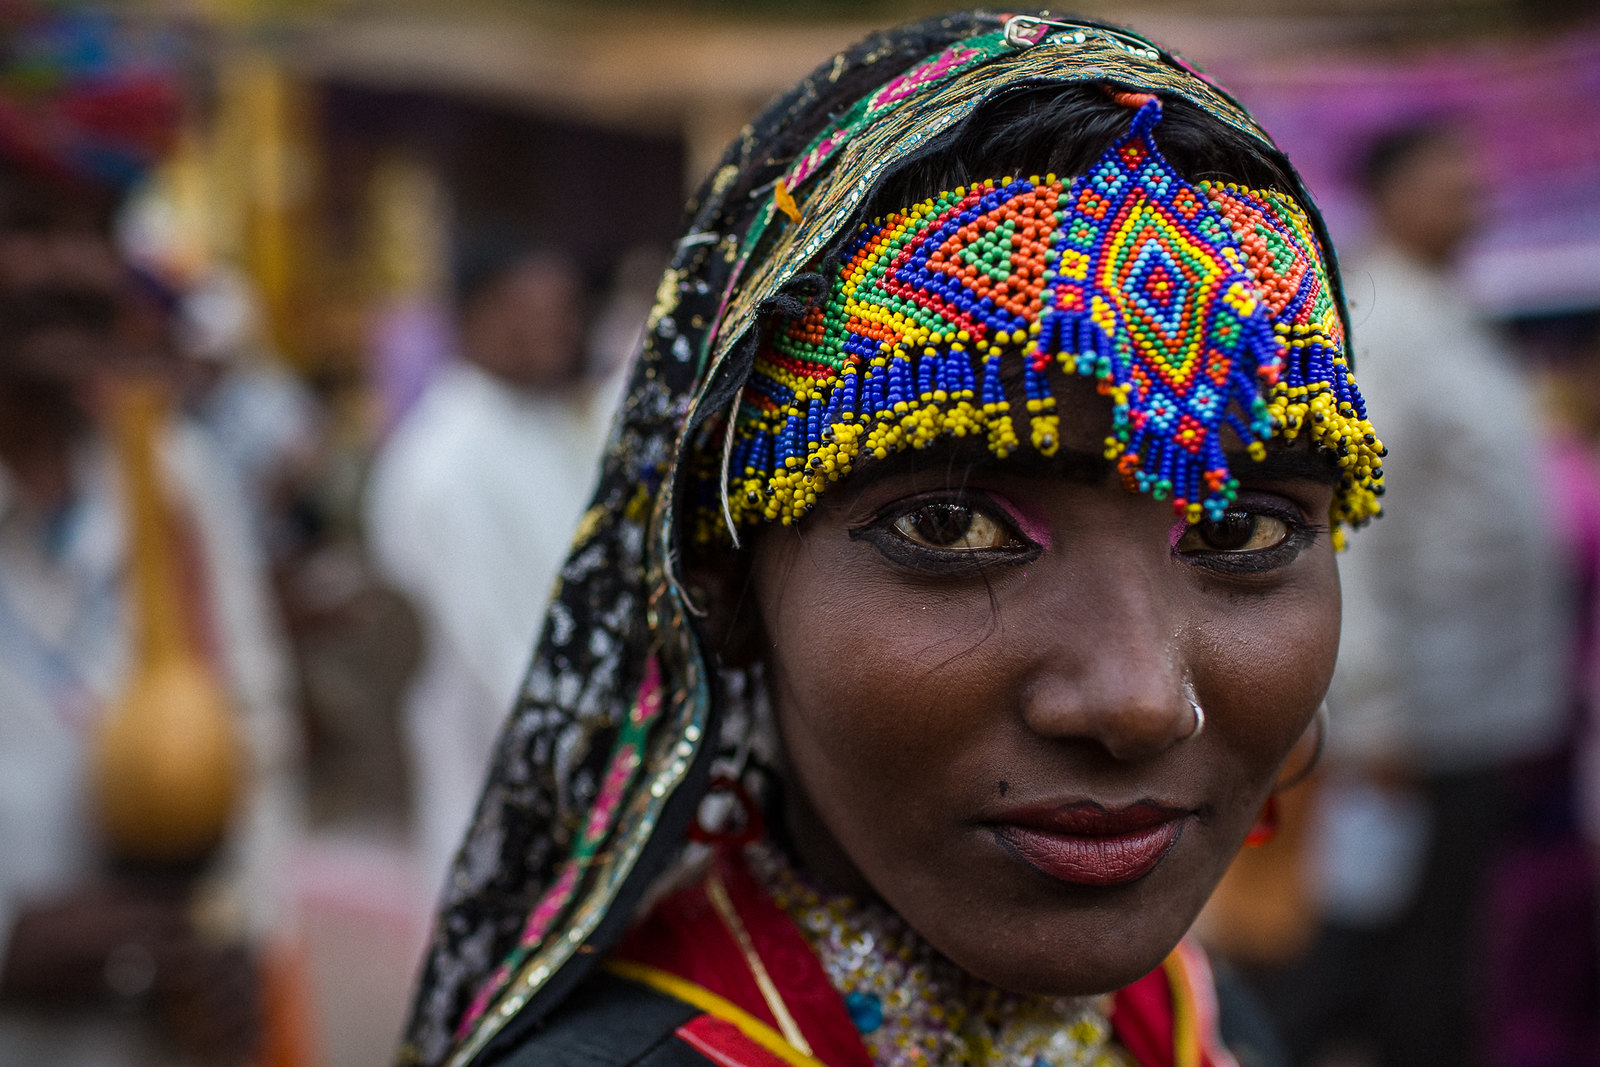 beautiful woman travel photography rajasthan india by anthony pappone